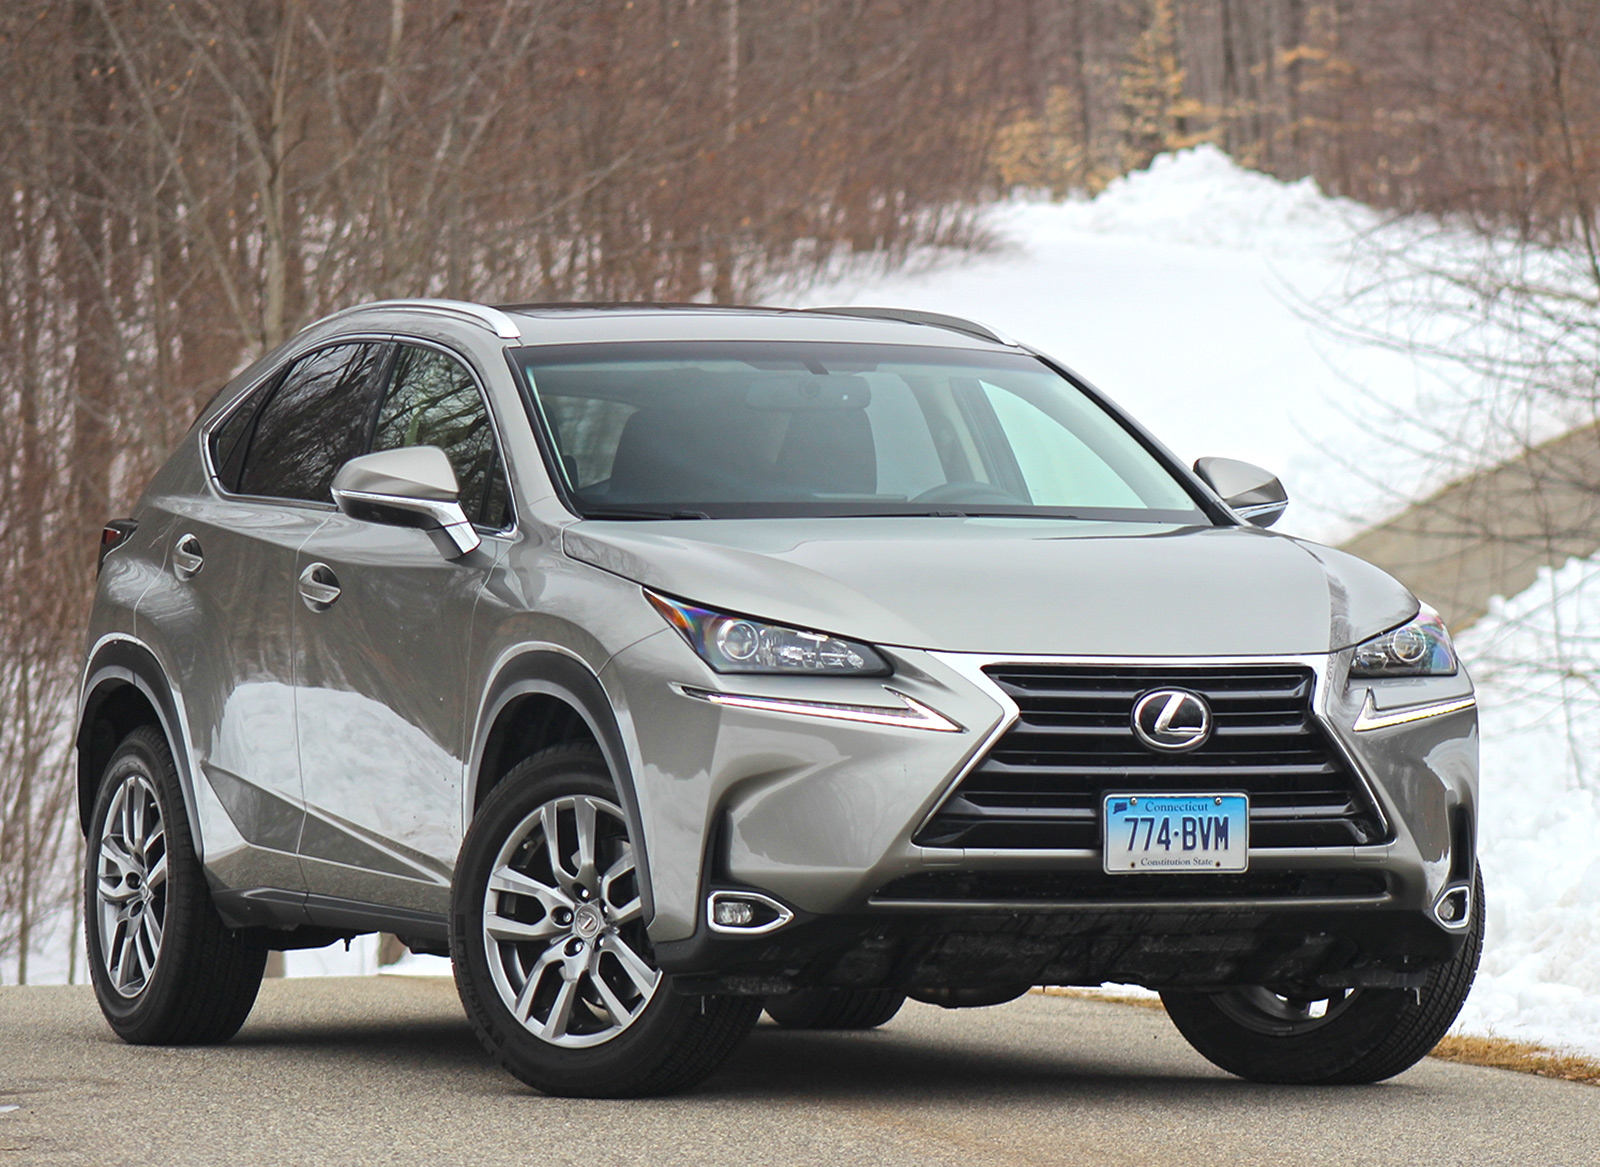 Lexus Joins The Crowded Upscale Compact Suv Fray With New Nx Clearly Late To Party Key Question Is Does Bring Anything